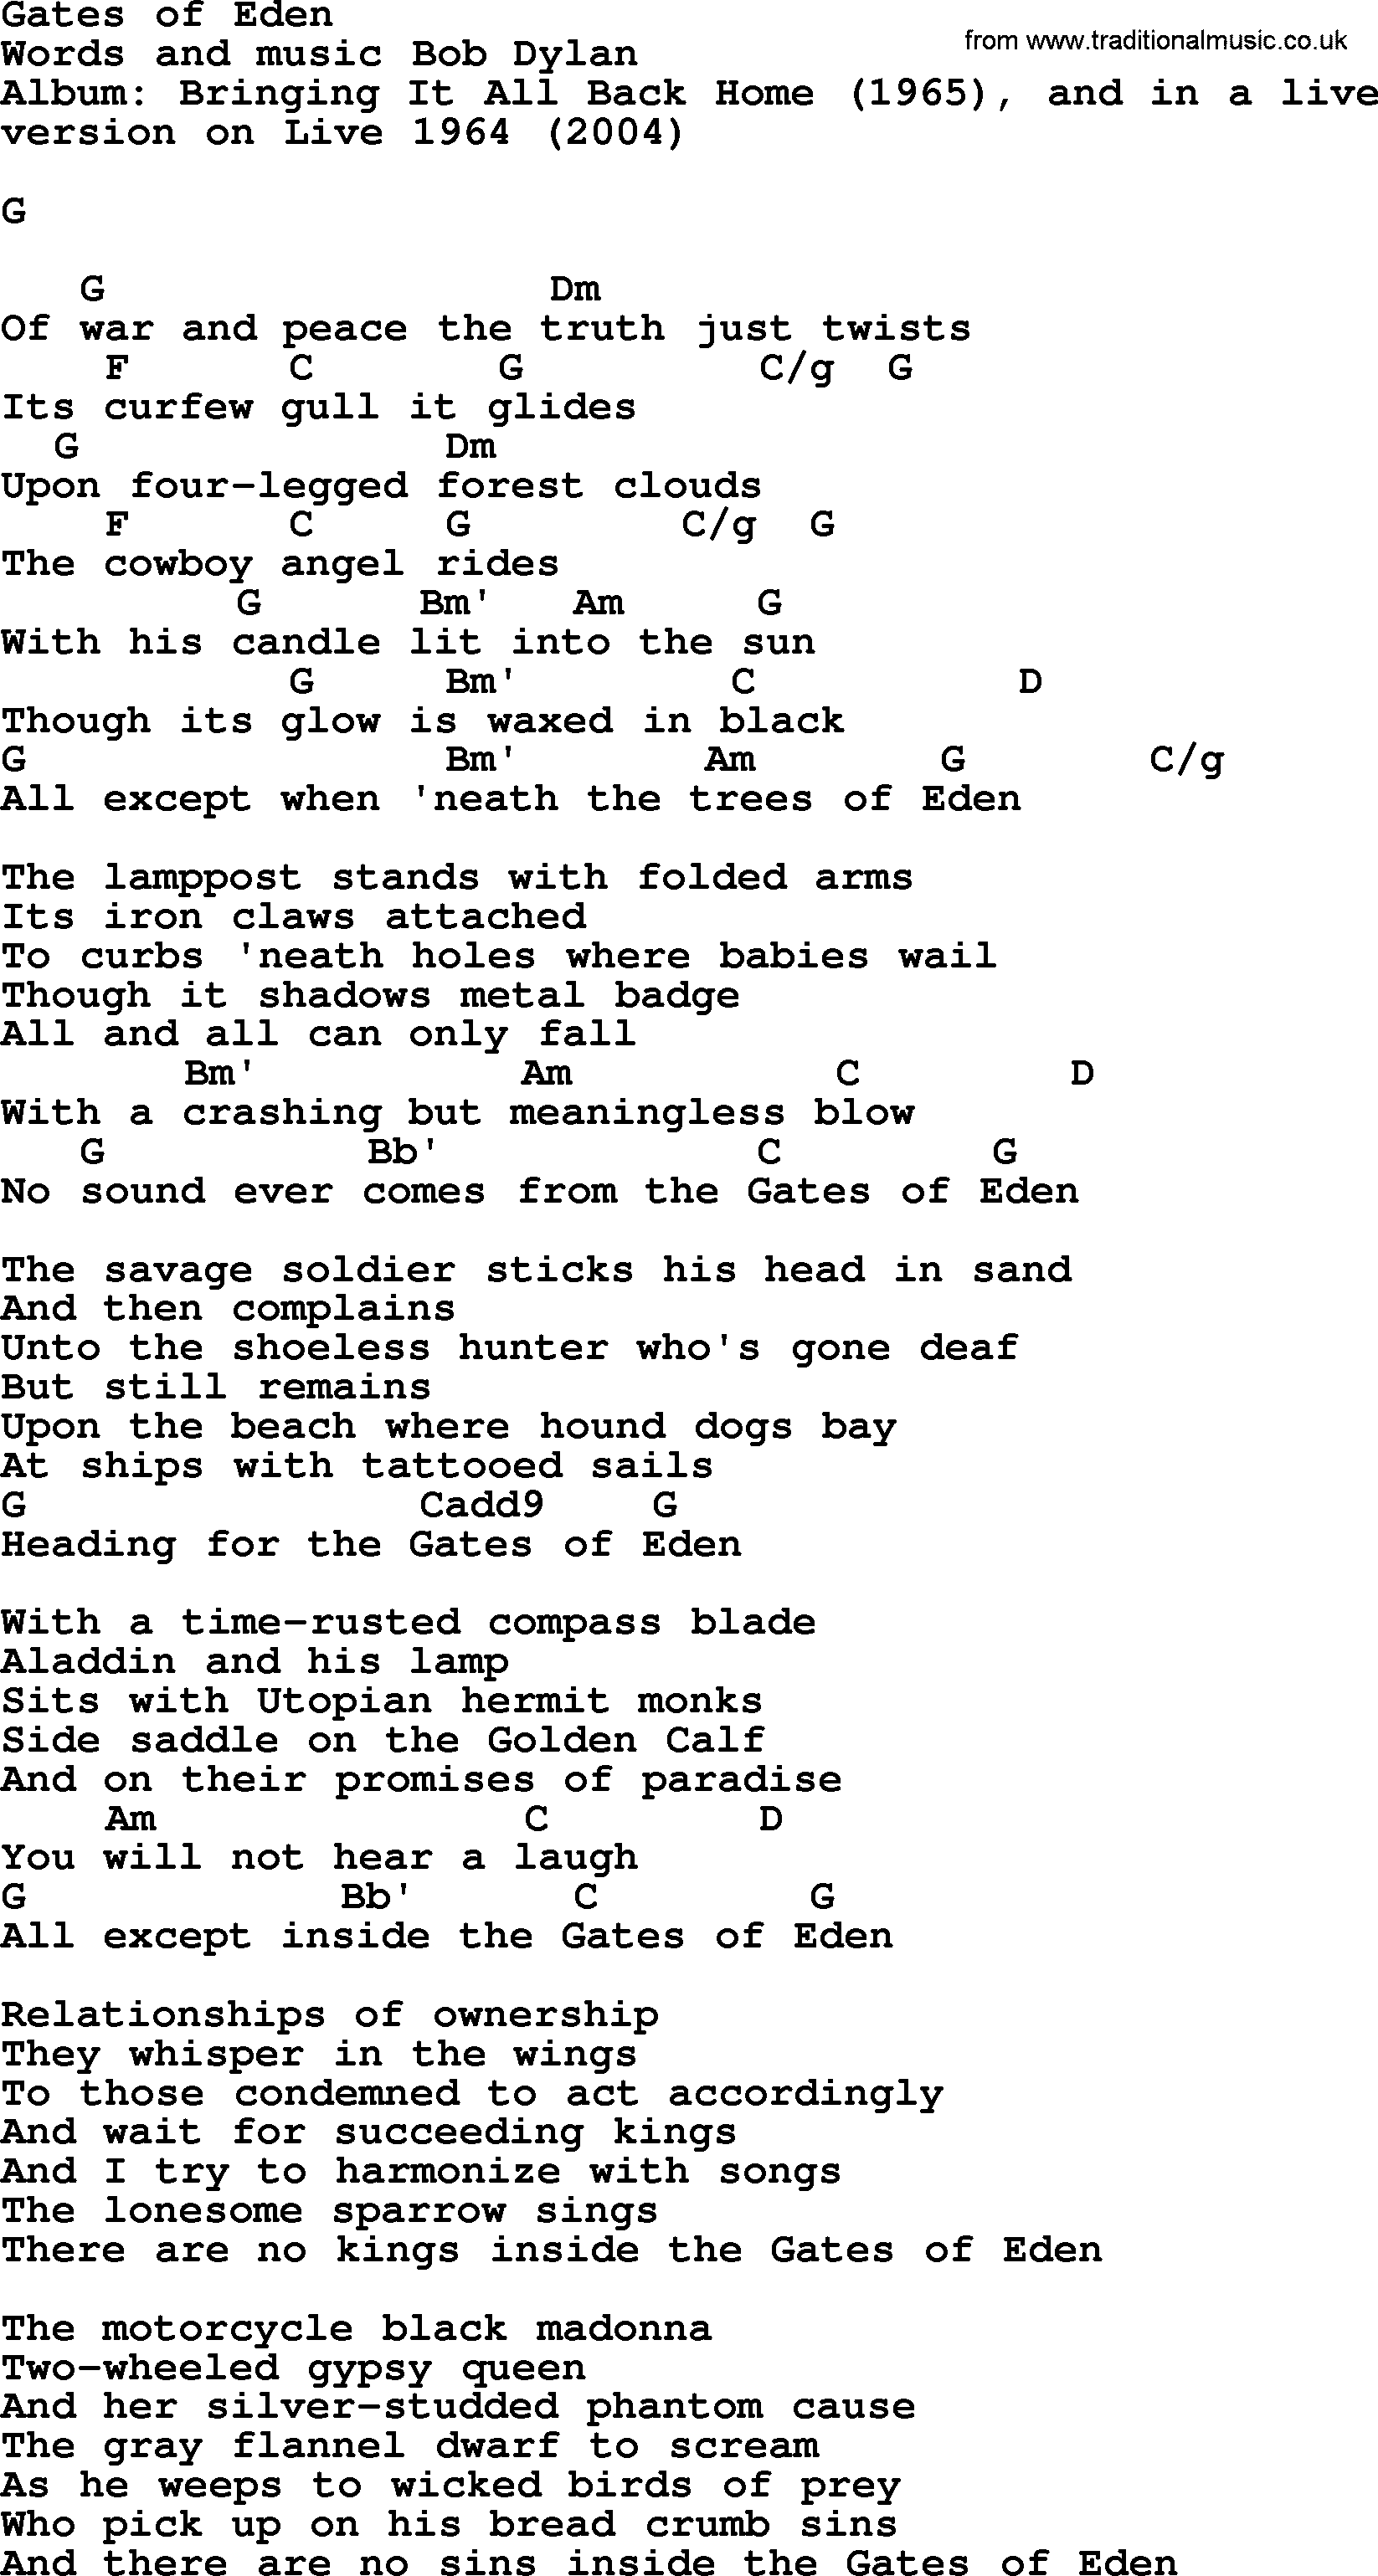 Bob Dylan Song Gates Of Eden Lyrics And Chords